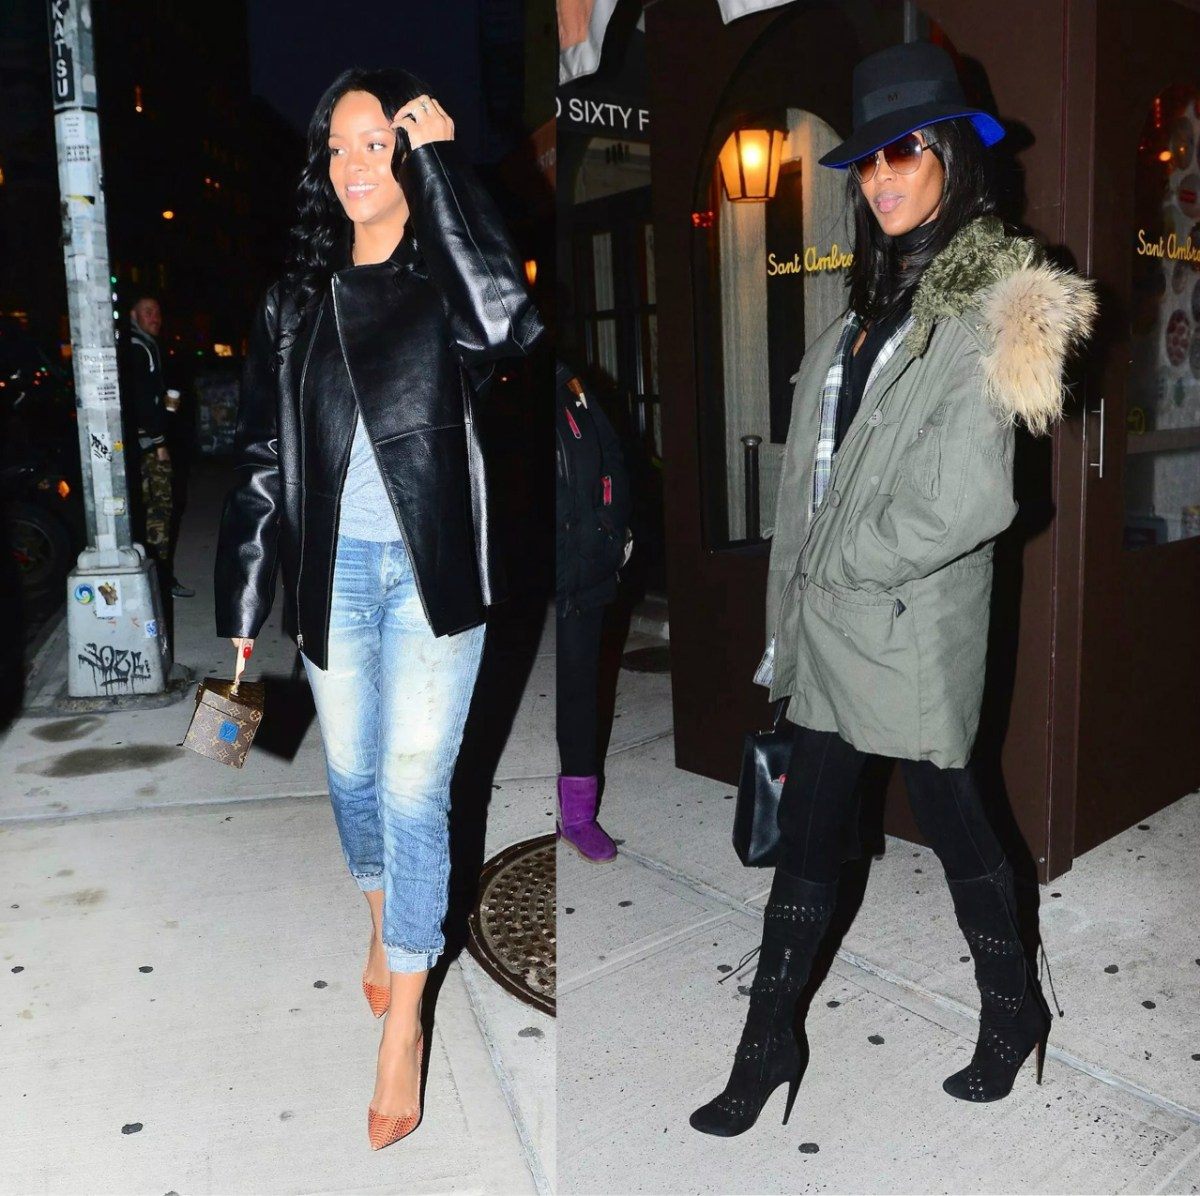 {Out & About} RIHANNA & NAOMI CAMPBELL Have Dinner In NYC